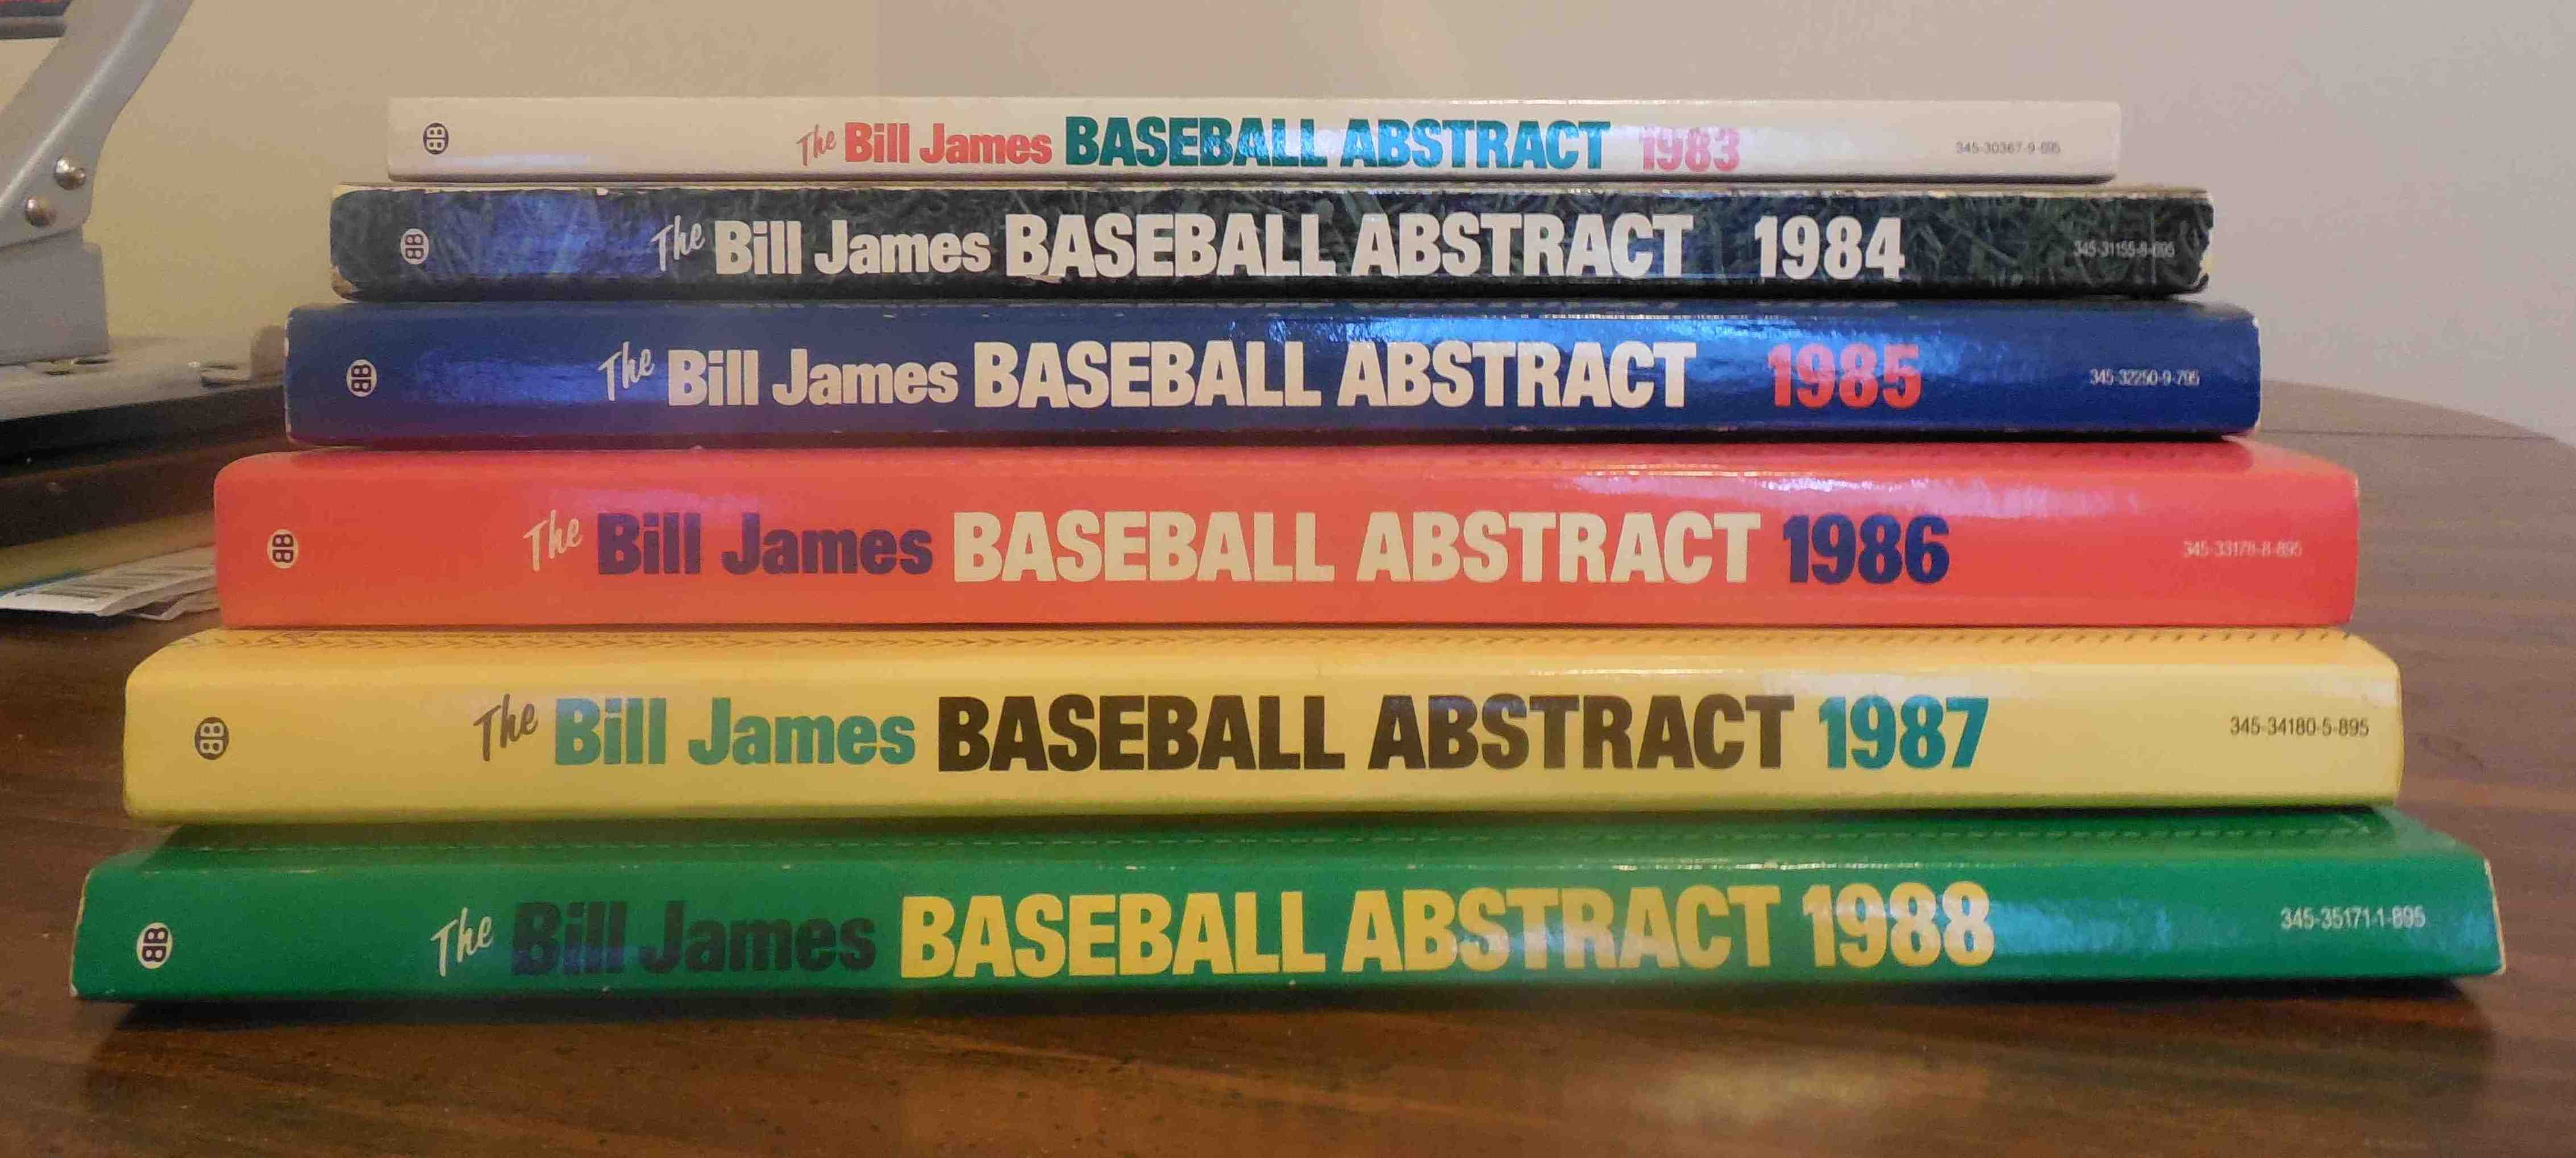 my stack of The Bill James Abstract, courtesy of Charlie Richter